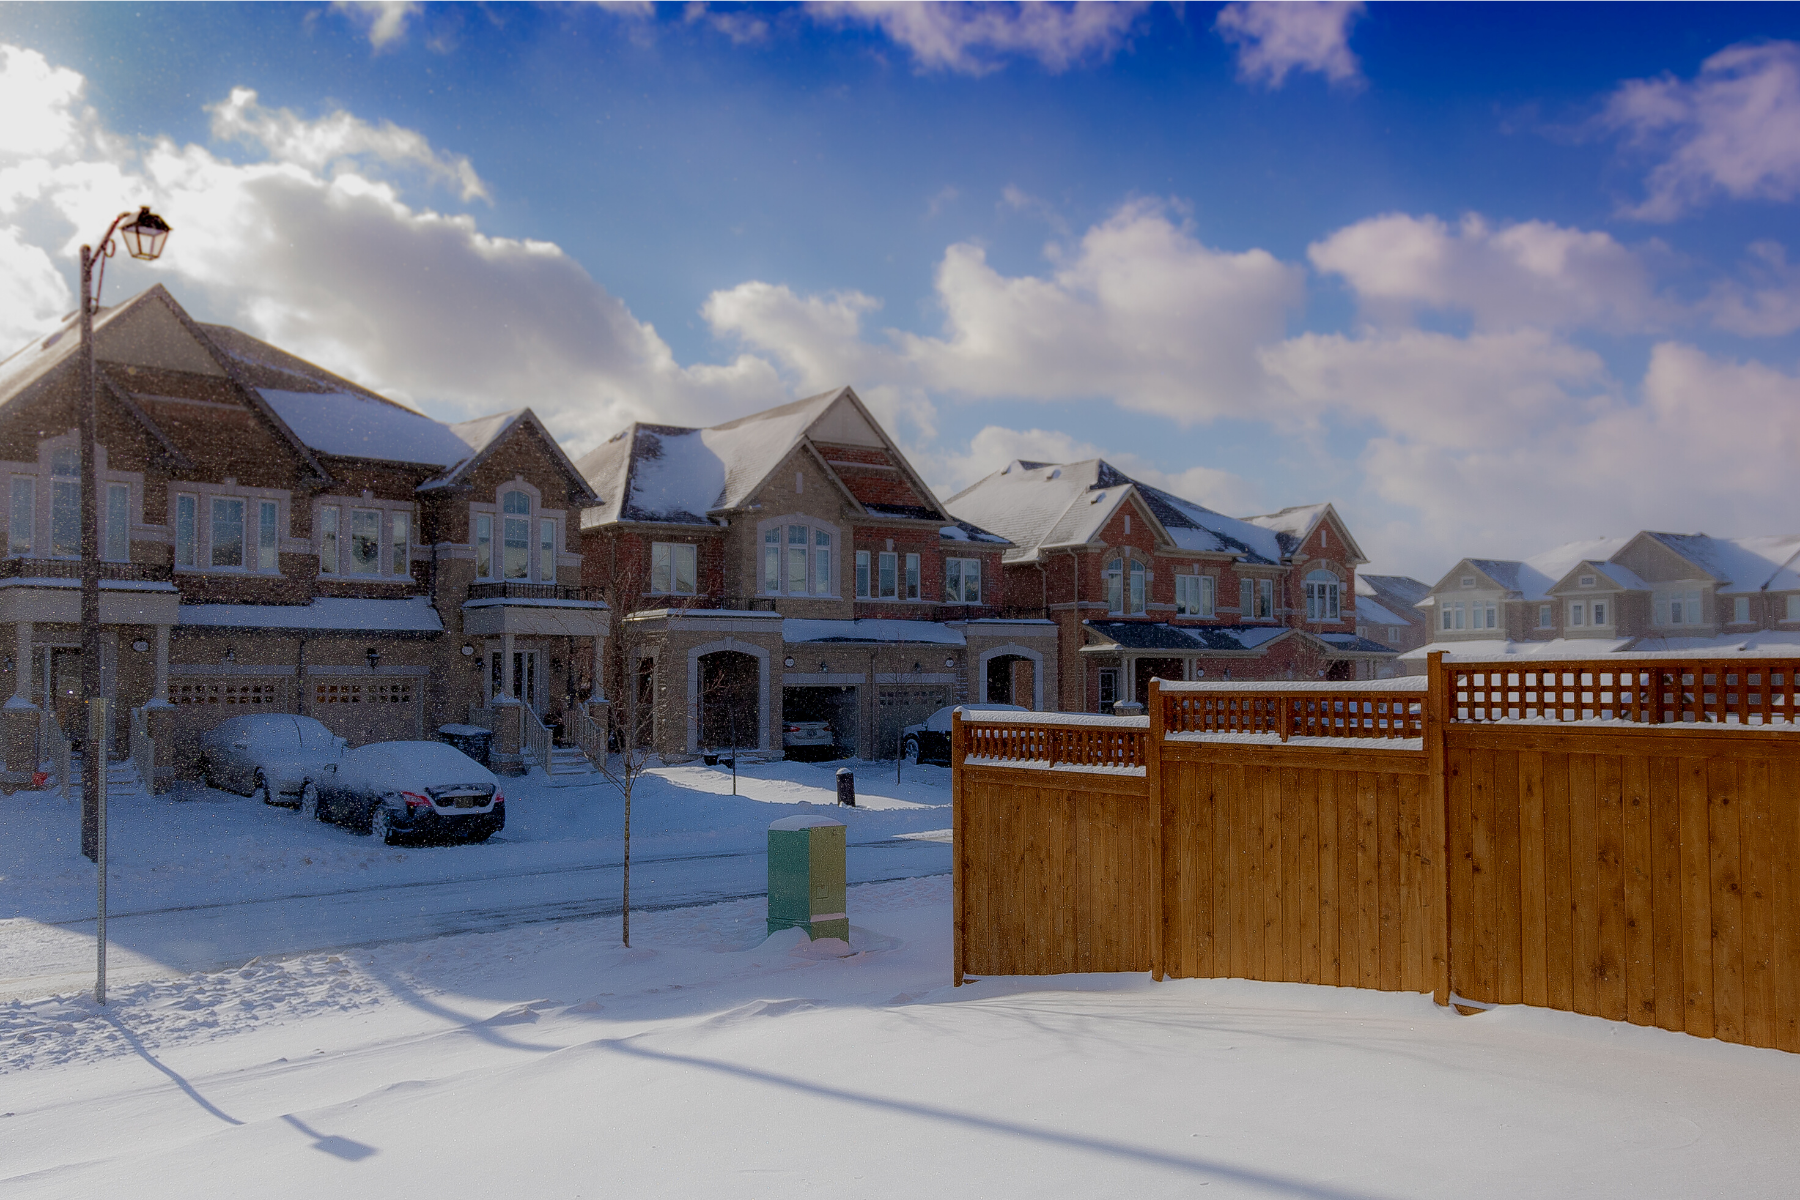 Snowy street with several houses and a wooden fence on a sunny, partly cloudy day